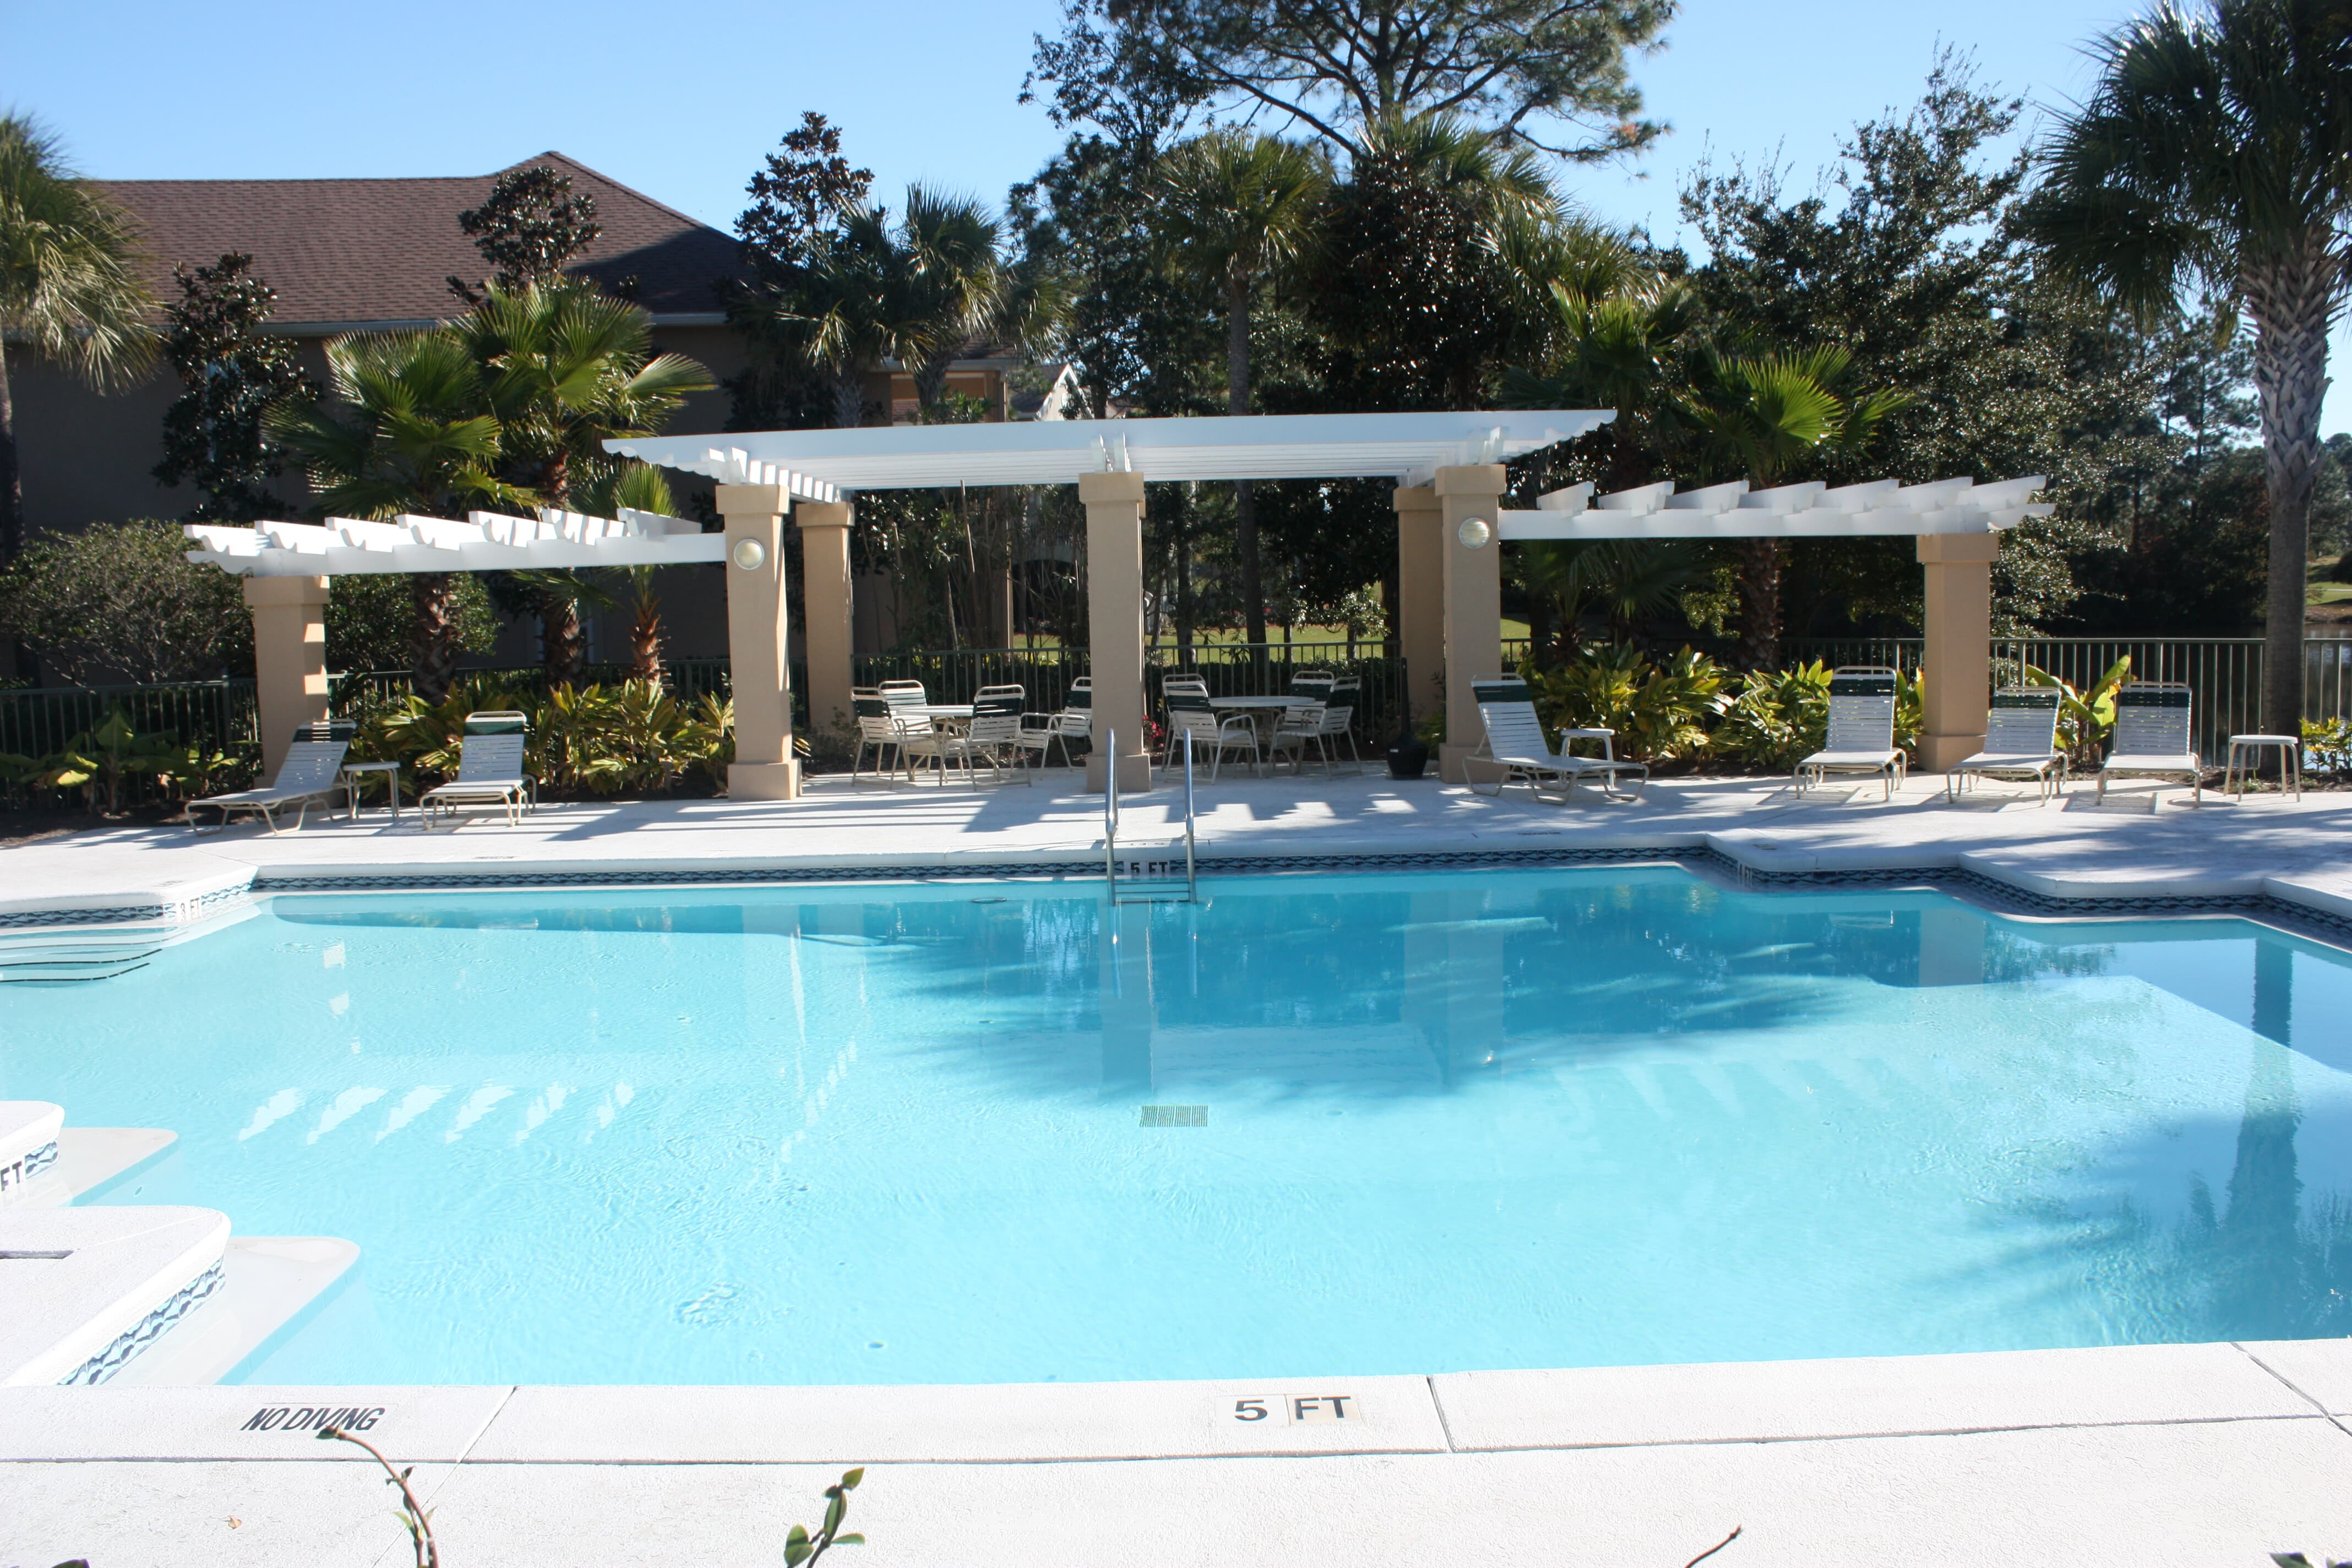 8540 Turnberry Condo rental in Sandestin Rentals ~ Cottages and Villas  in Destin Florida - #25